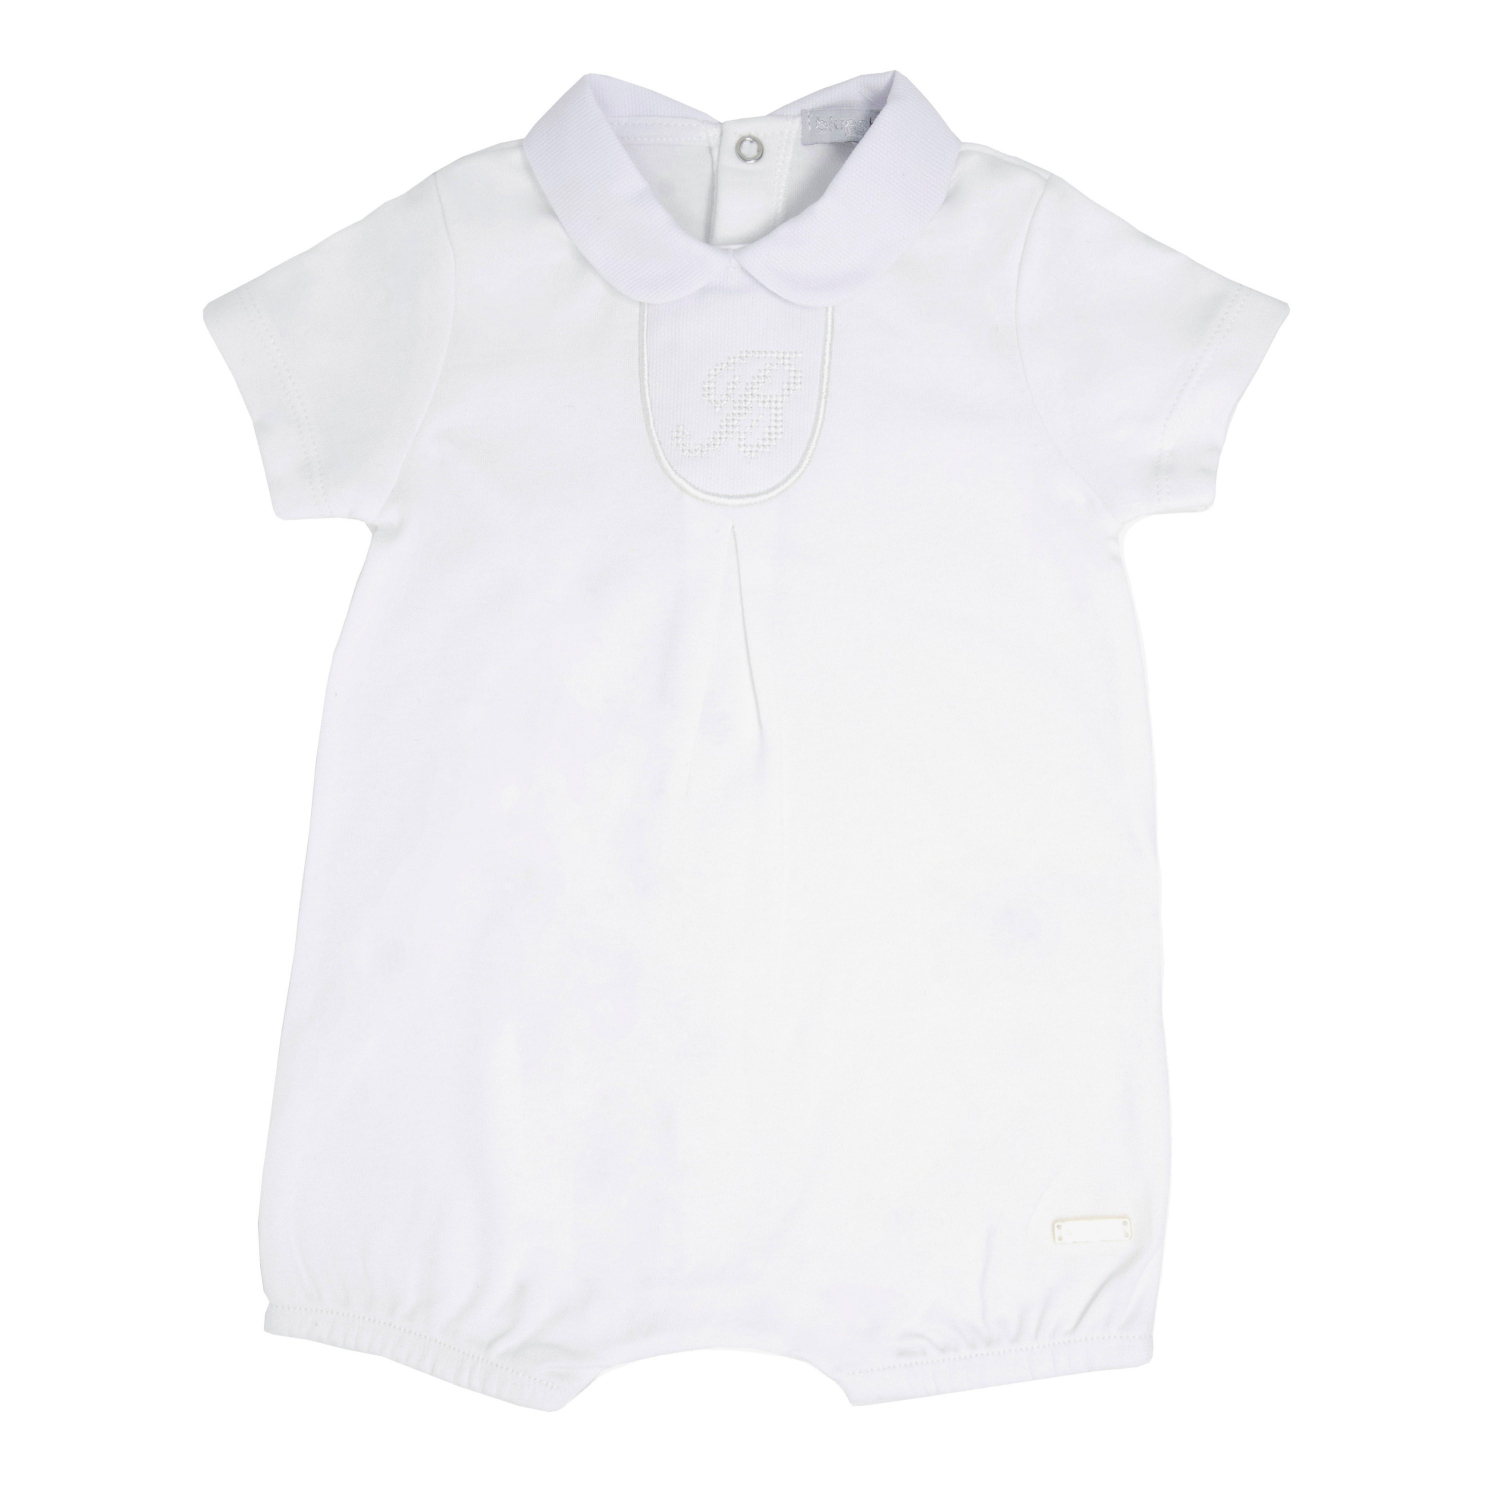 Classic Chic Summer Baby outfit